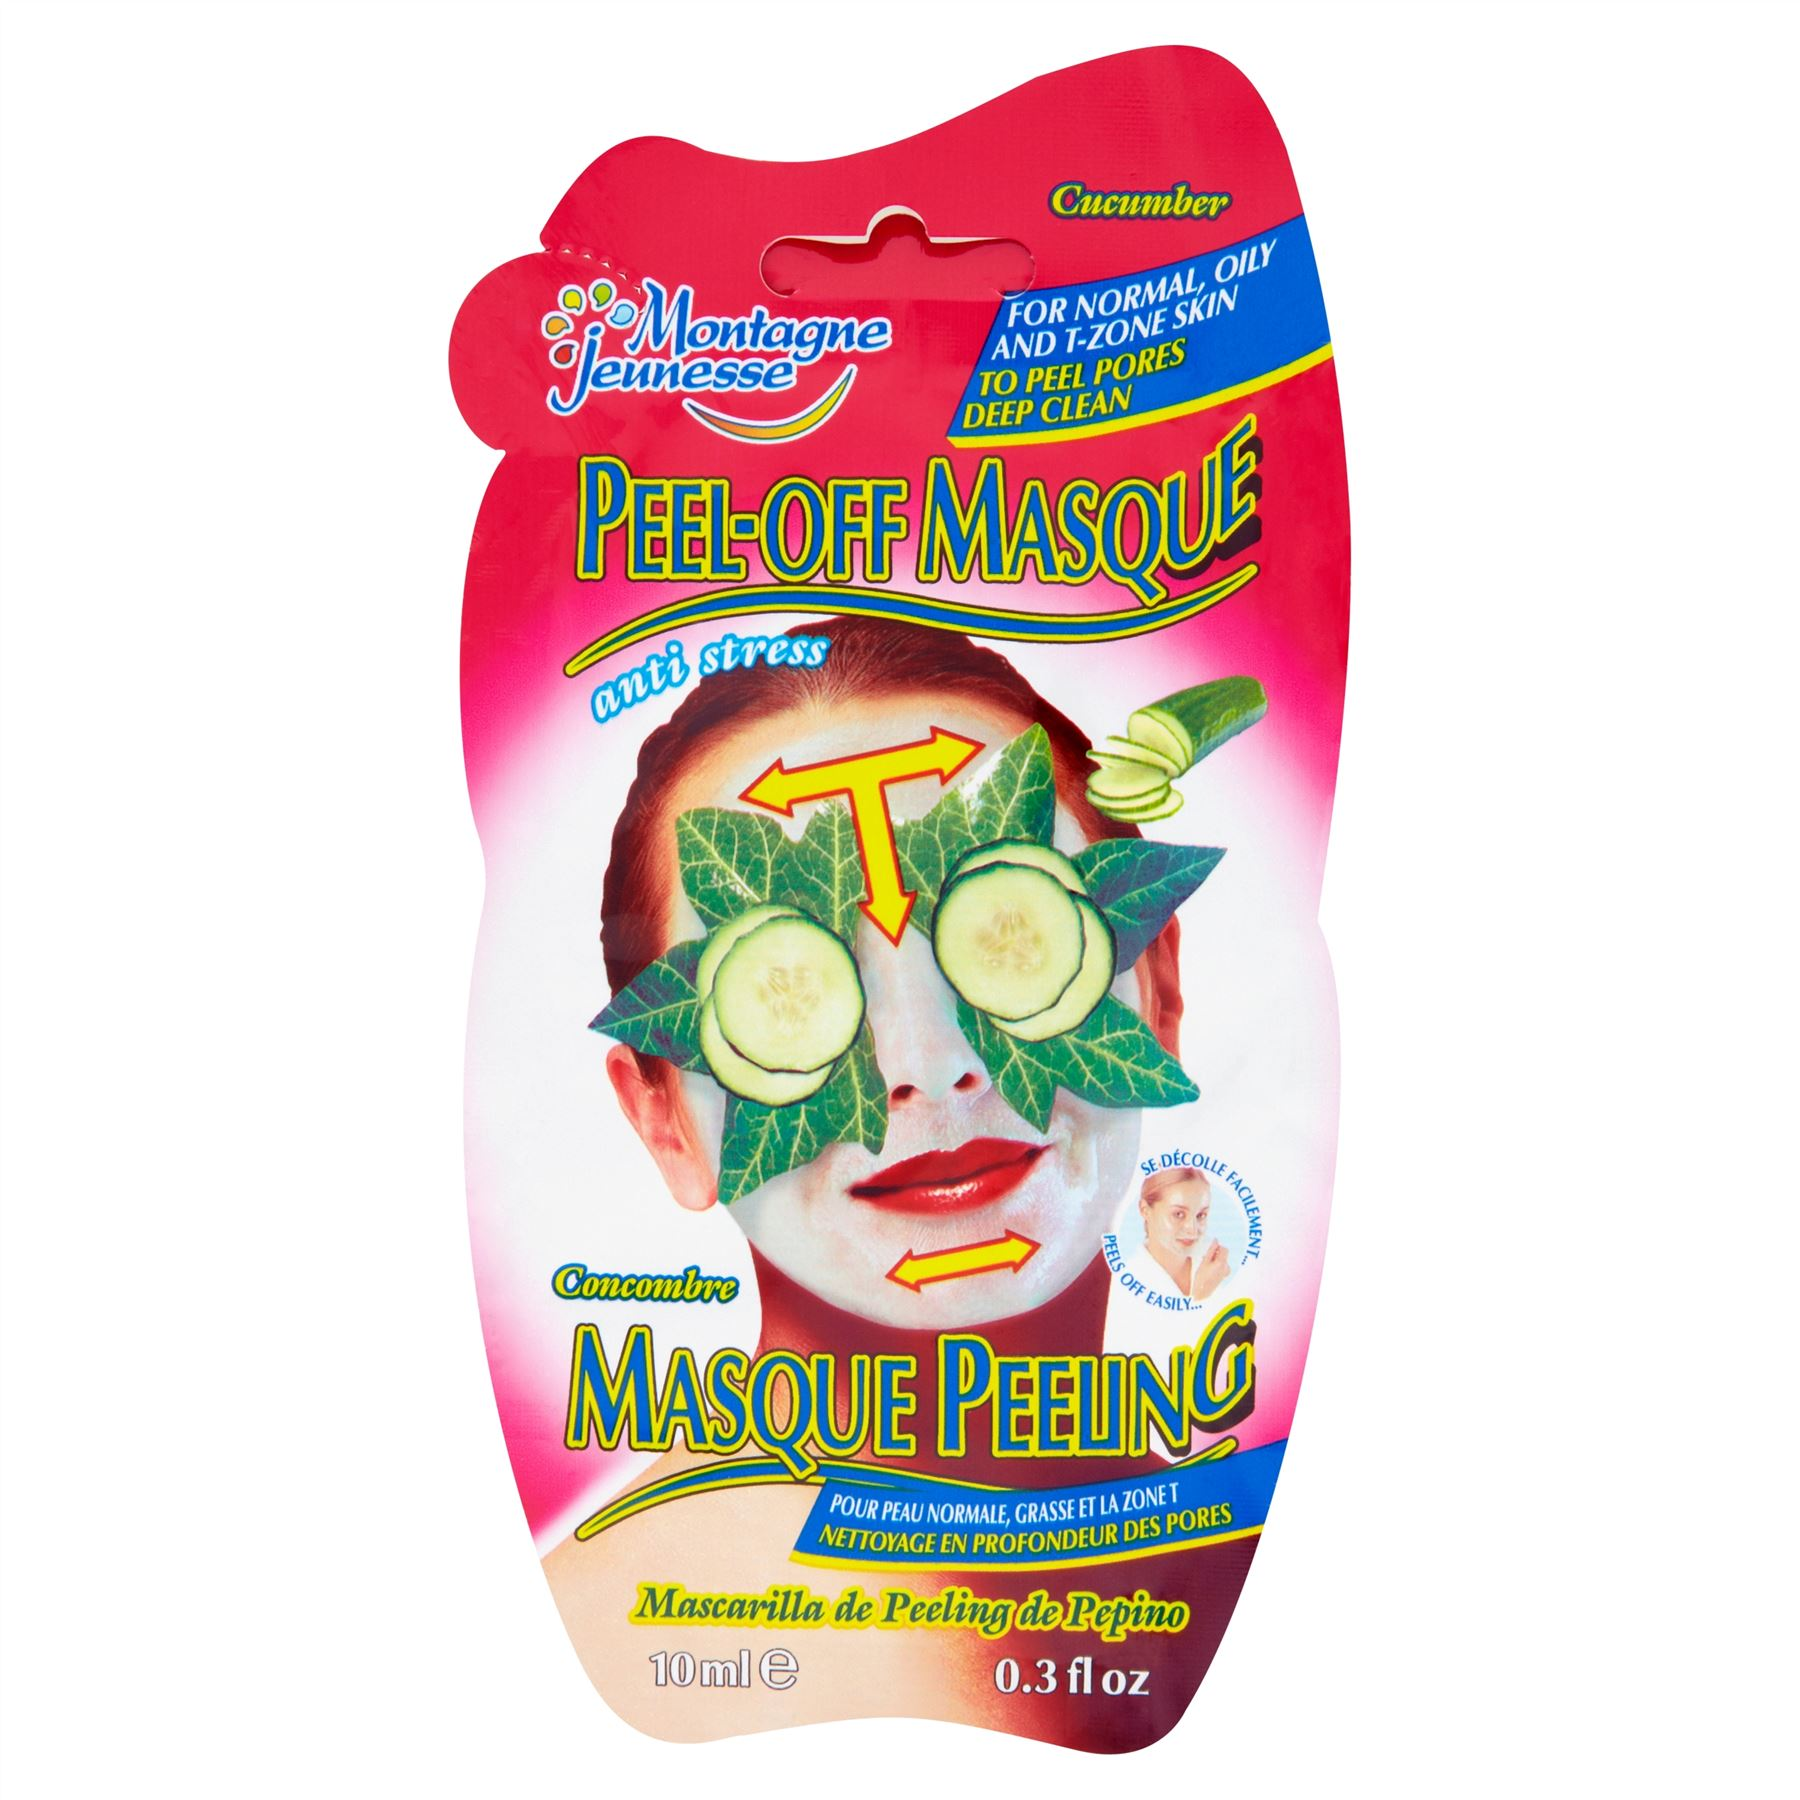 Dry skin favorite mask collection: mask is my skin care essential